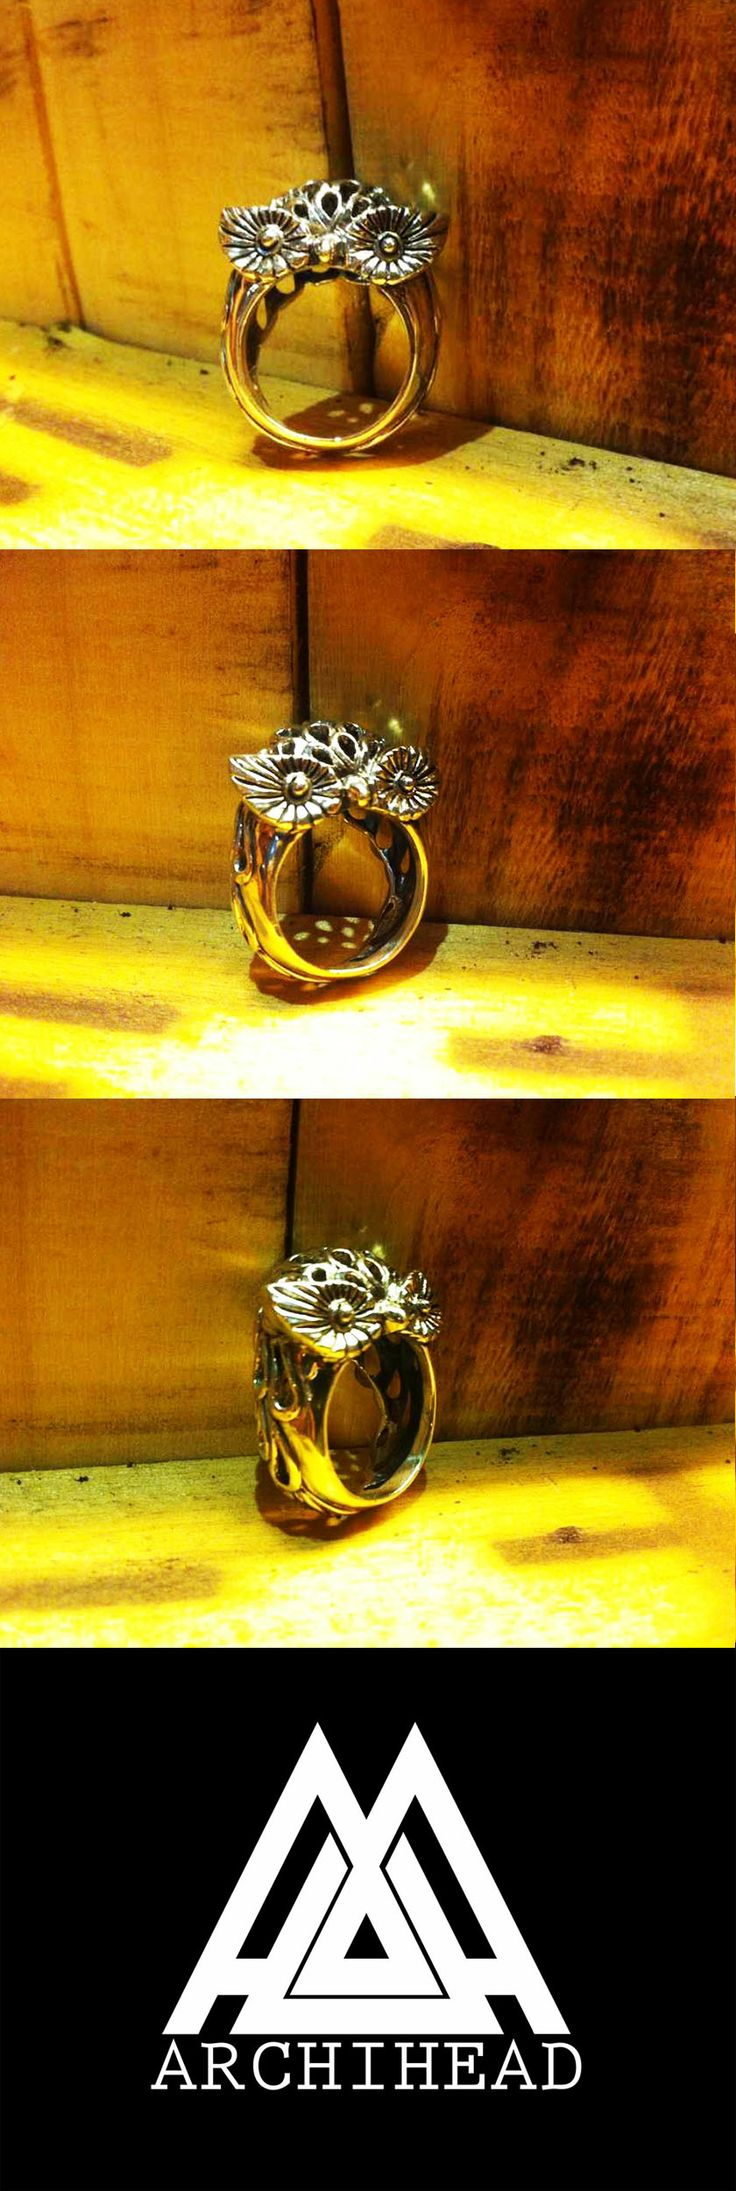 ARCHIHEAD Rings (Owl) Archiheadproject@gmail.com